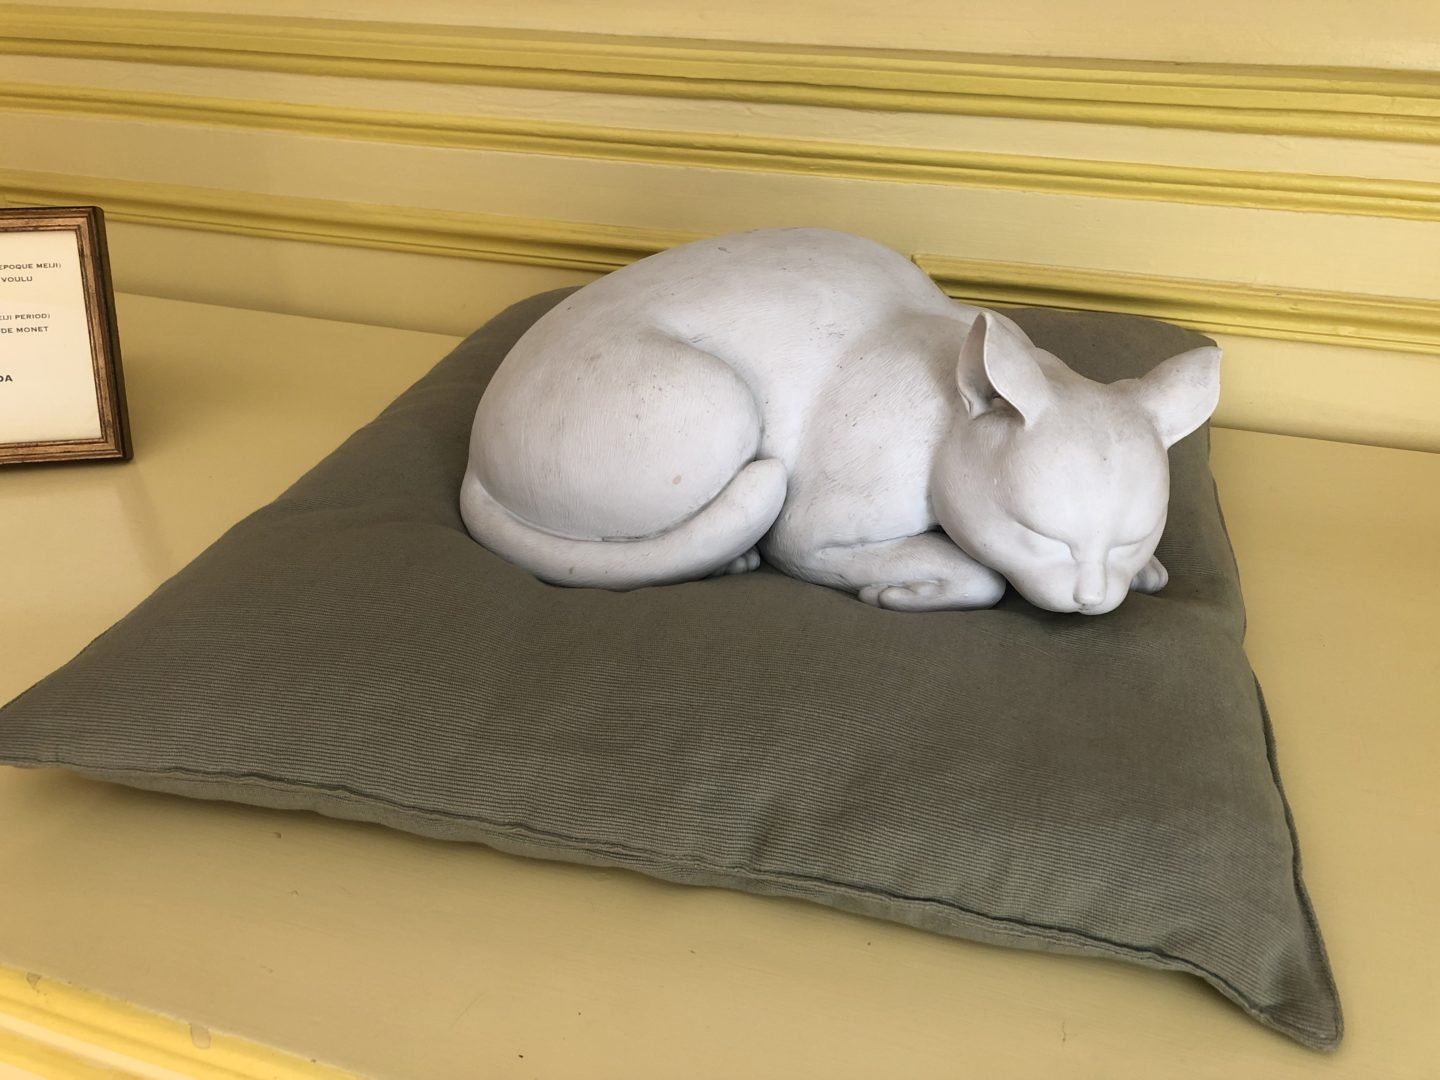 "Monet's cat, There is also a biscuitware cat ""The Japanese Cat"" that was once owned by monet in the dining room. It has kindly regained its place in the home by its previous owner Monsieur Hideyuki Wada."